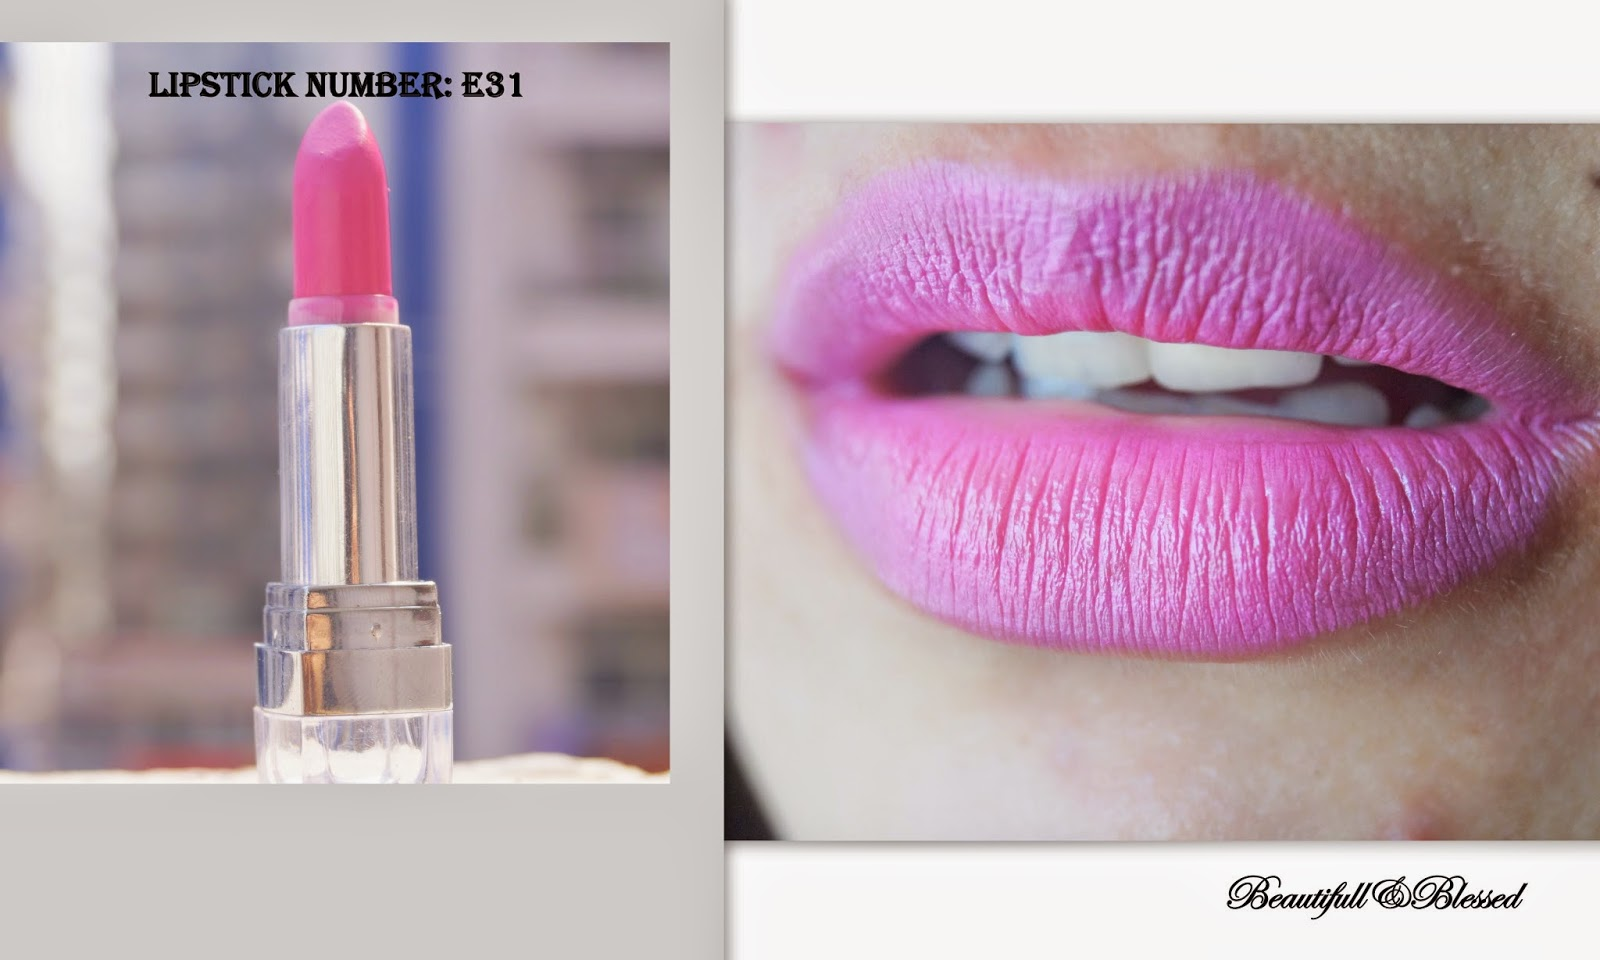 Colour care london lipstick price - I Like It But Not Love It In The Pictures It Has Come Out To Be More Neon Than It Is In Real It Is A Nice Everyday Color